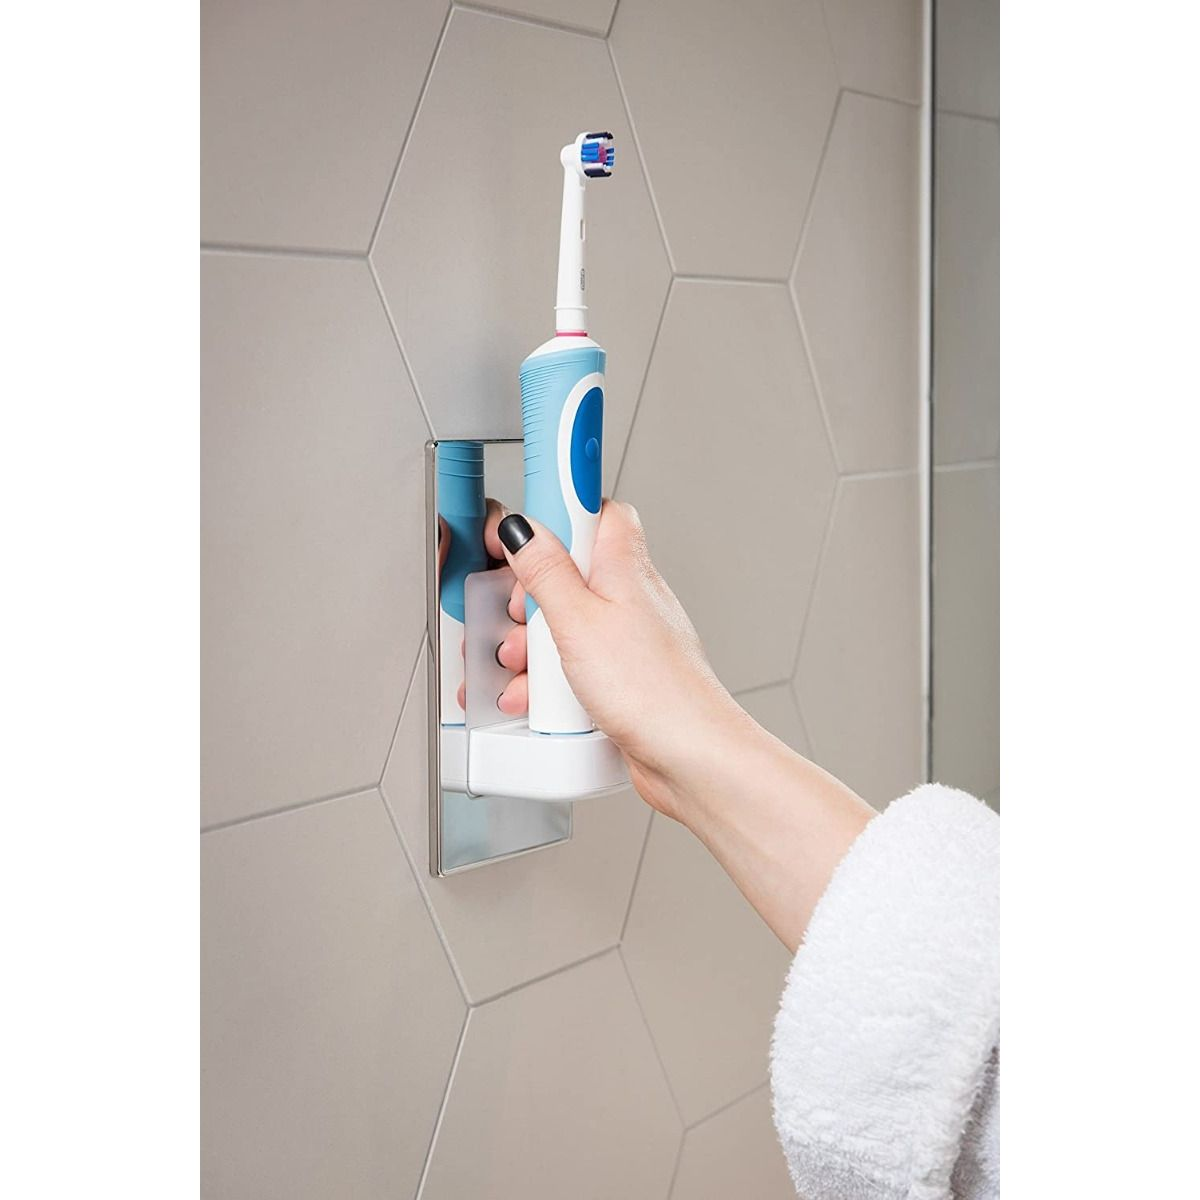 A woman putting the oral b electric toothbrush back on charge